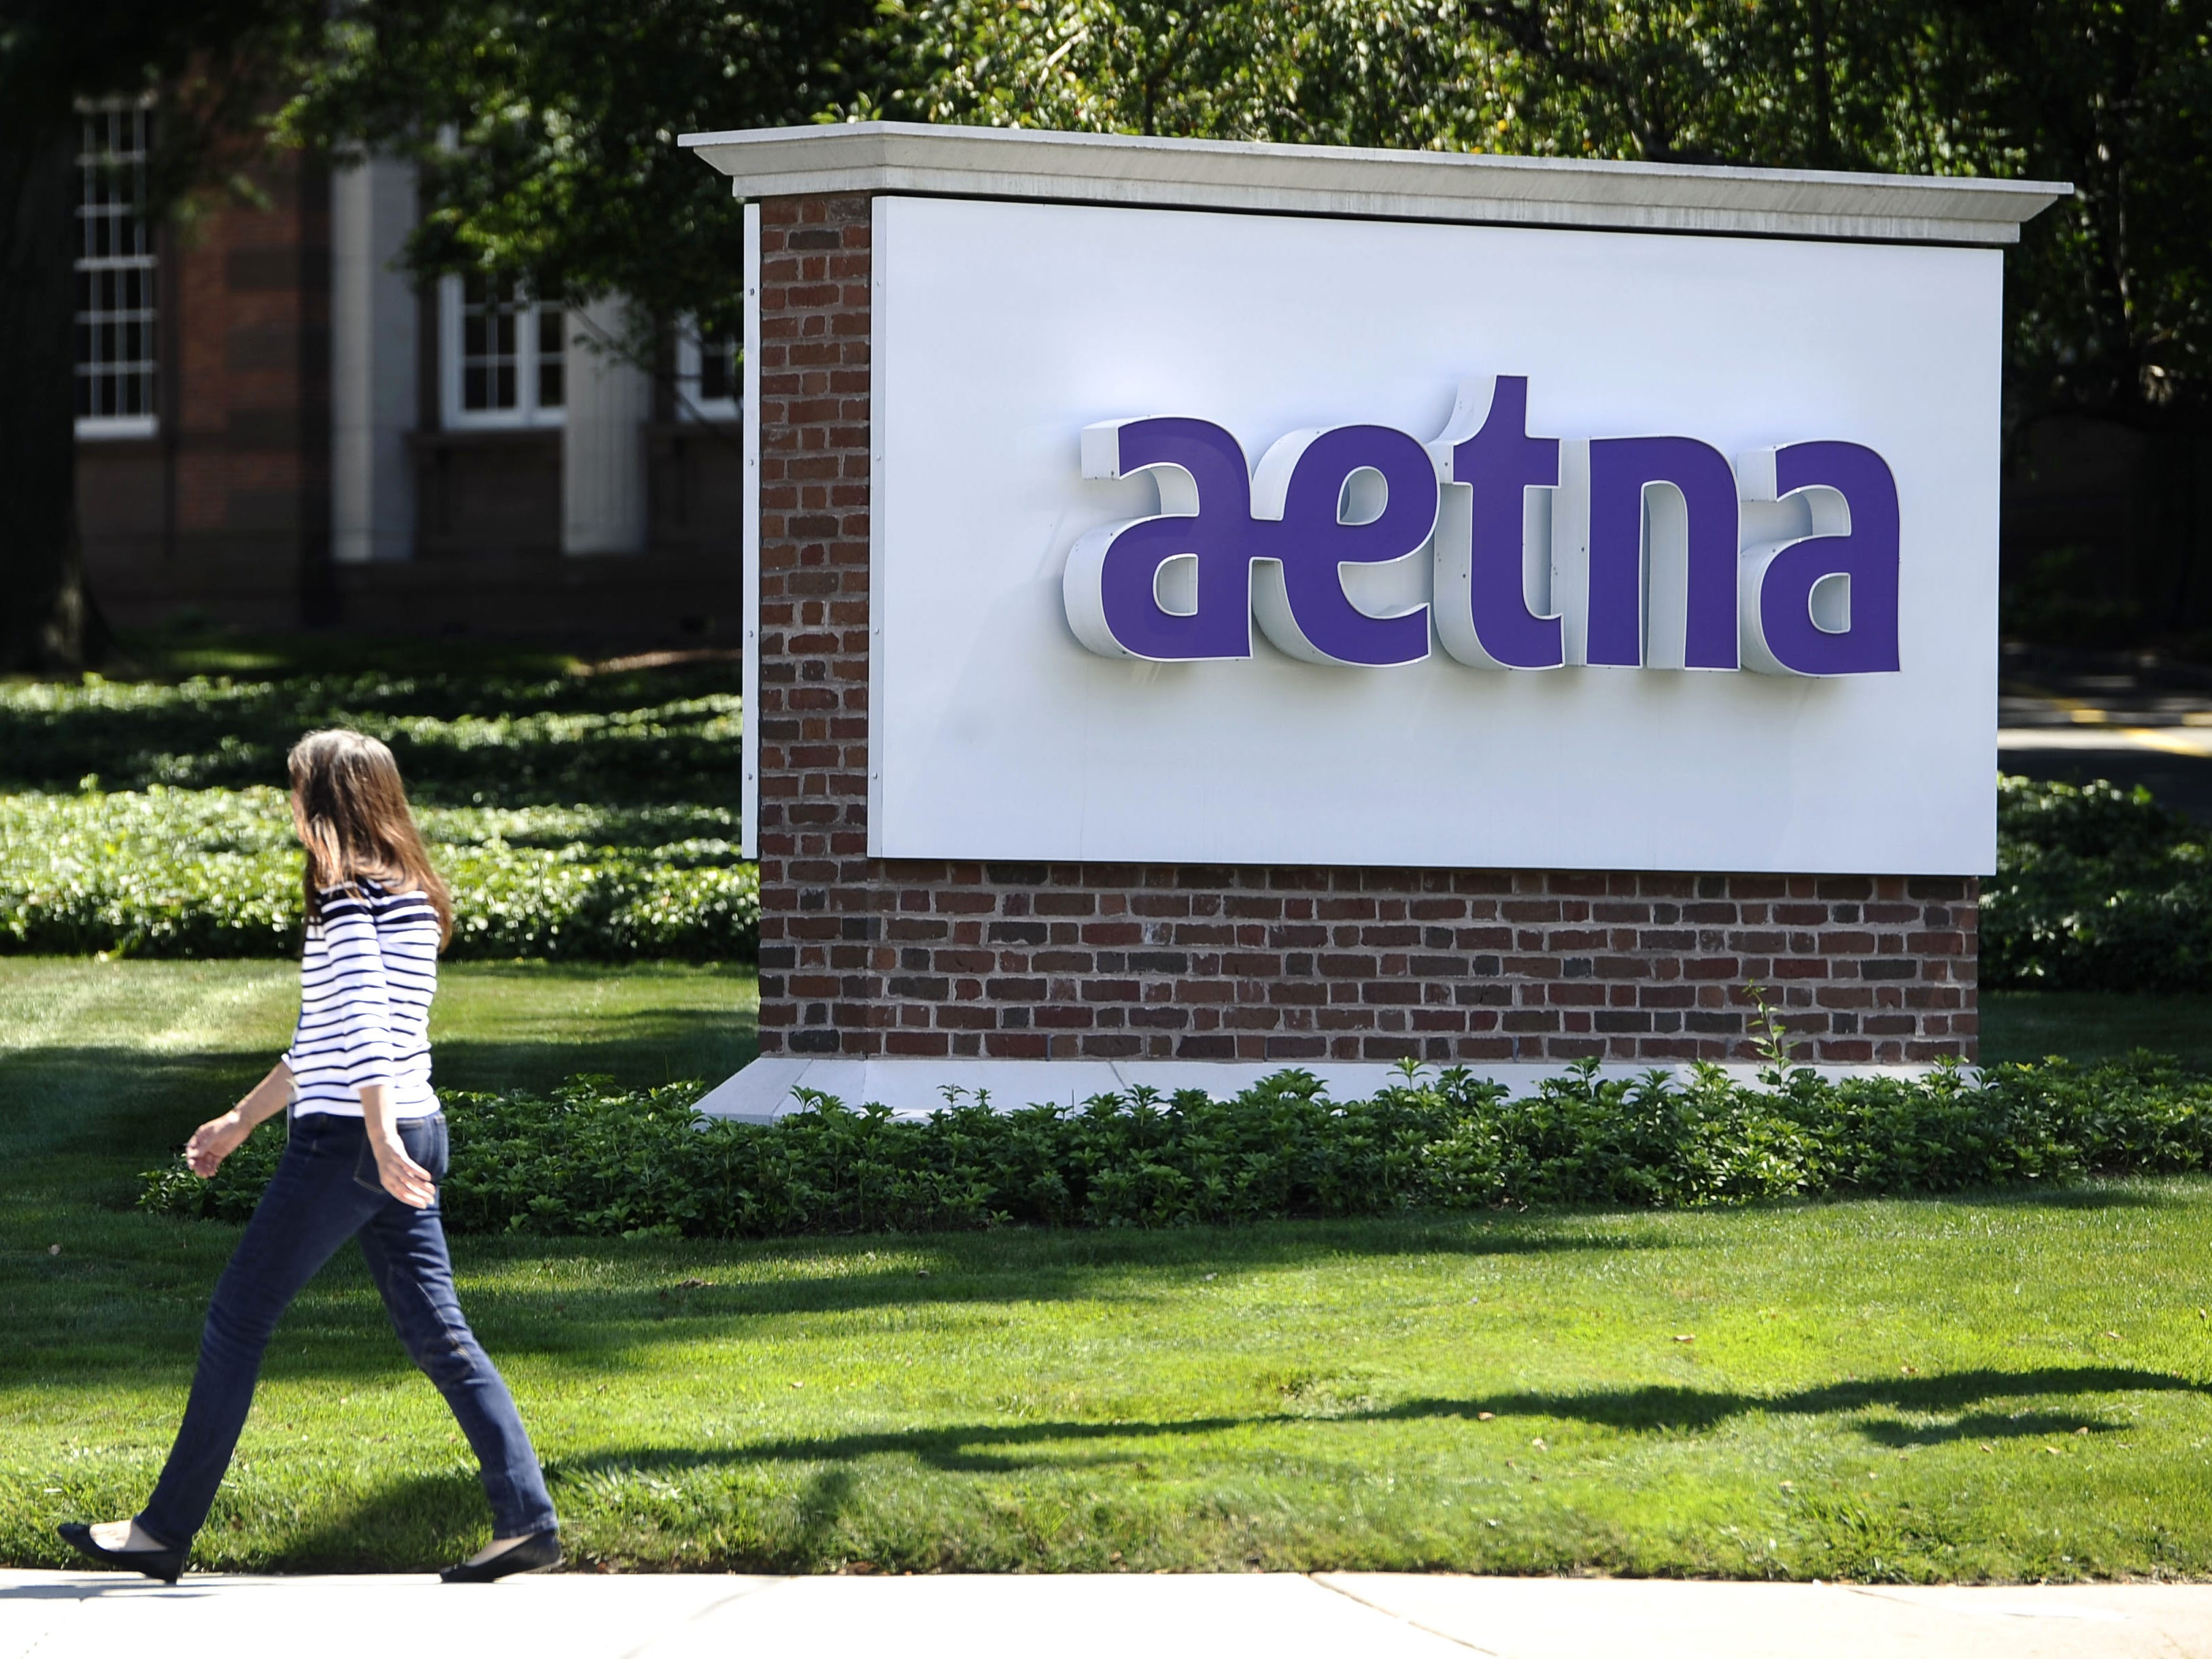 Aetna, hiring 120. The health-care benefits company has openings ranging from customer-service representatives to pharmacists. More info: aetna.jobs.